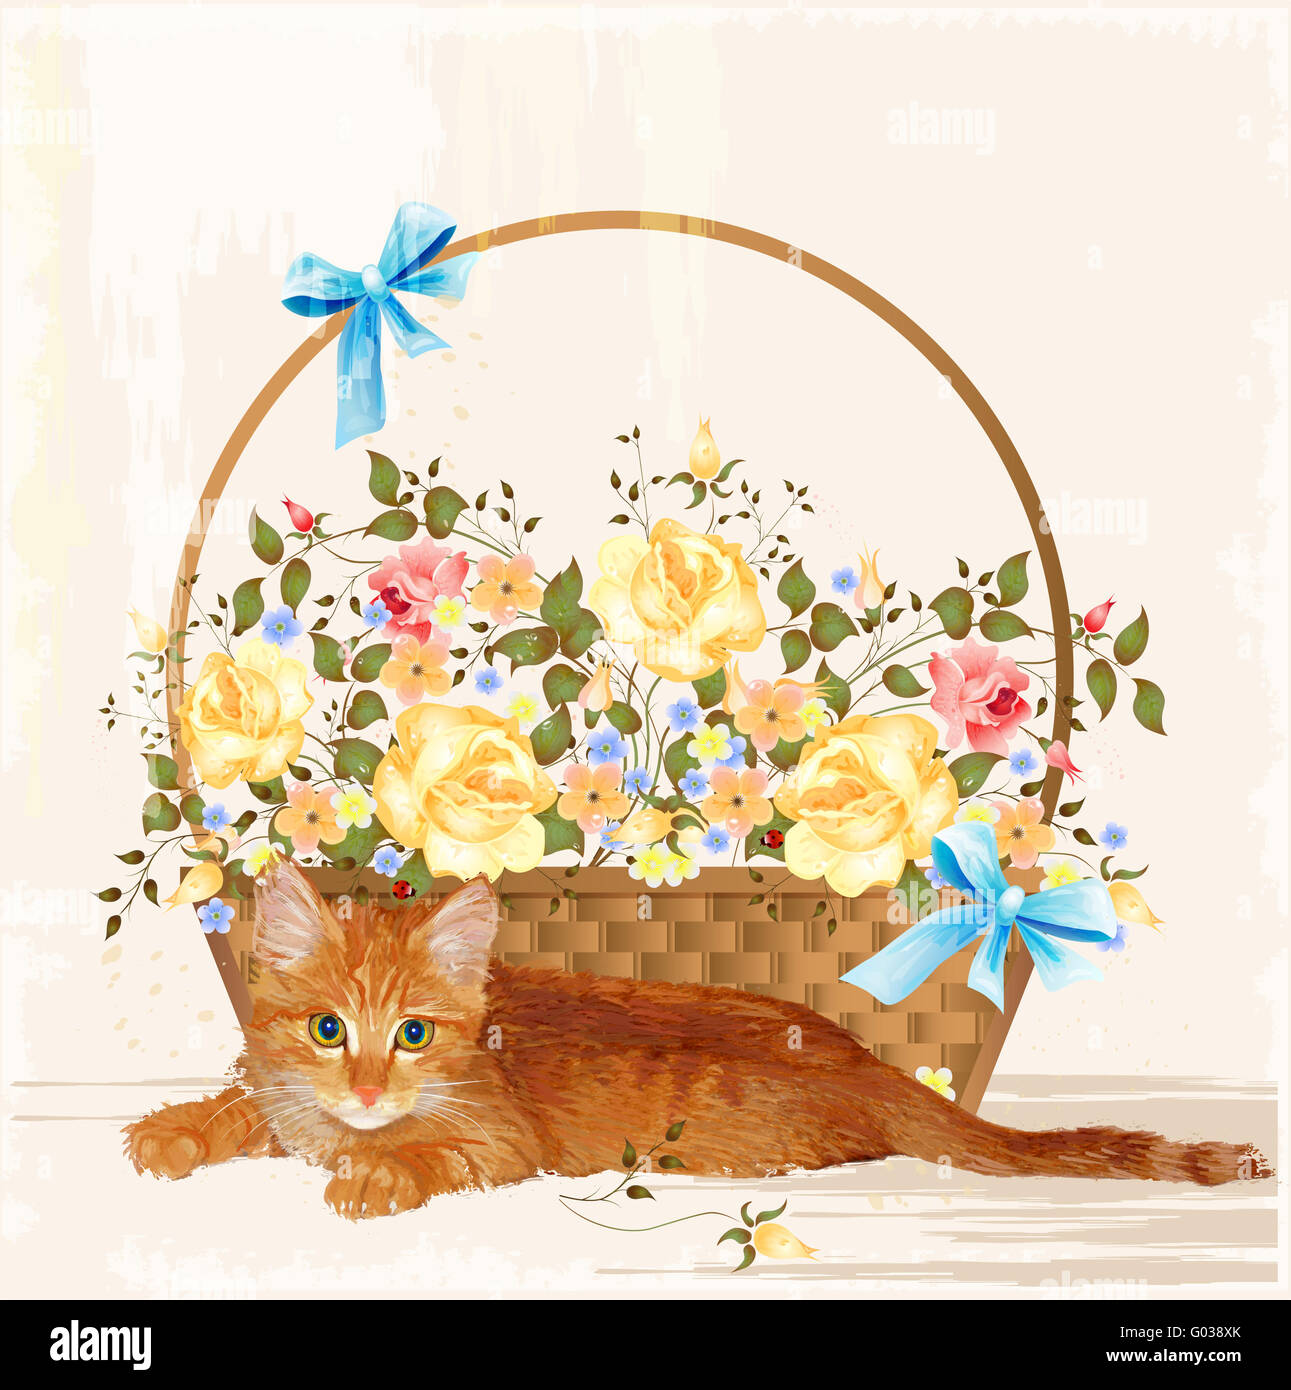 vintage greeting card with ginger  kitten and basket - Stock Image